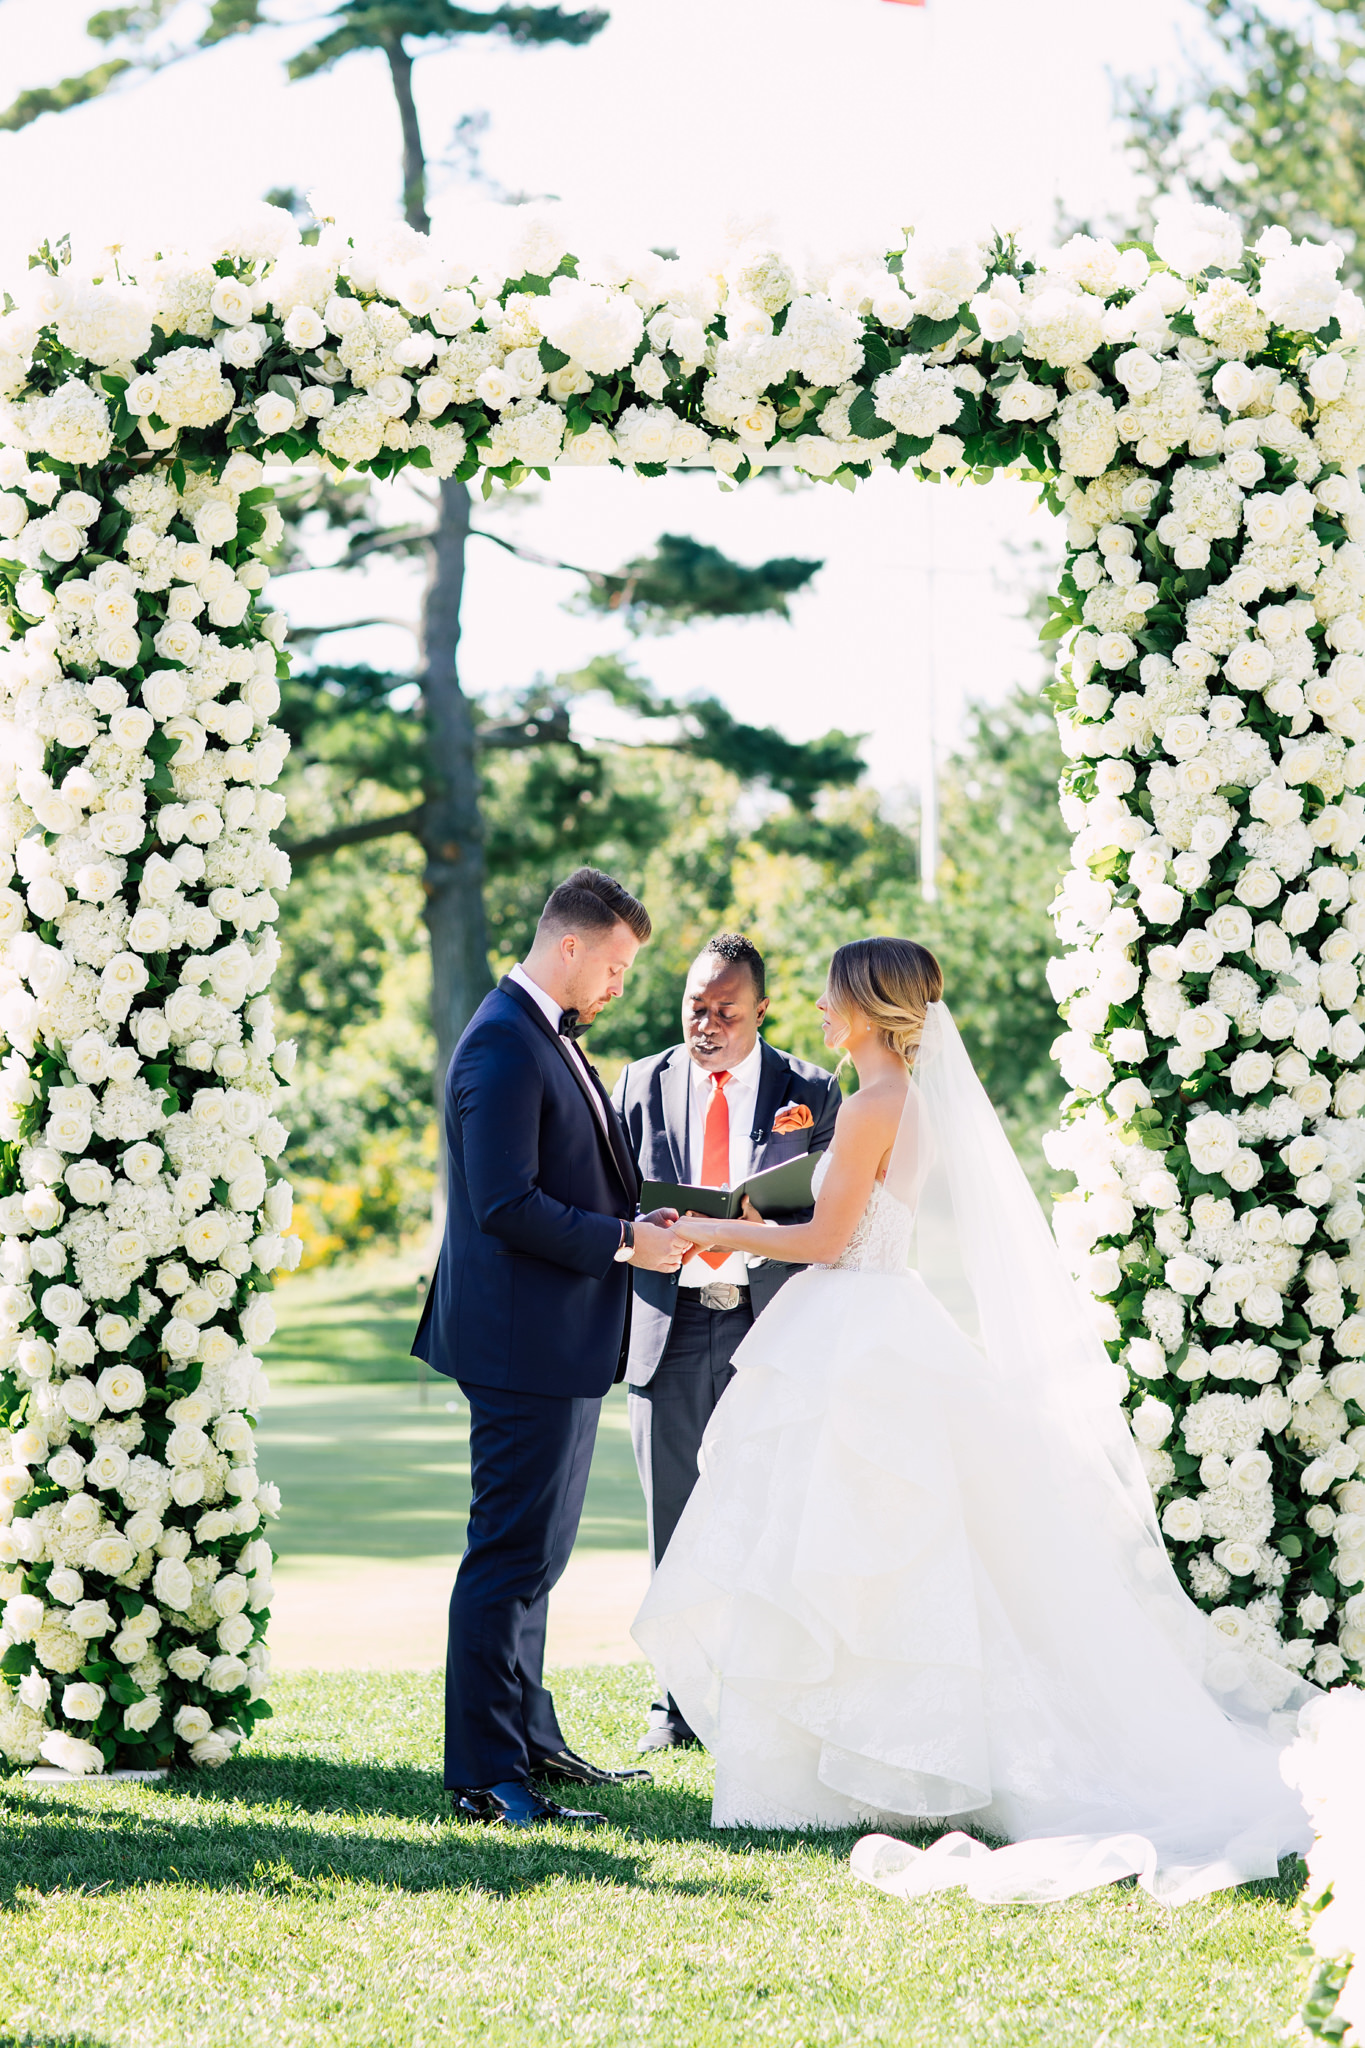 Toronto Golf Club Wedding Ceremony